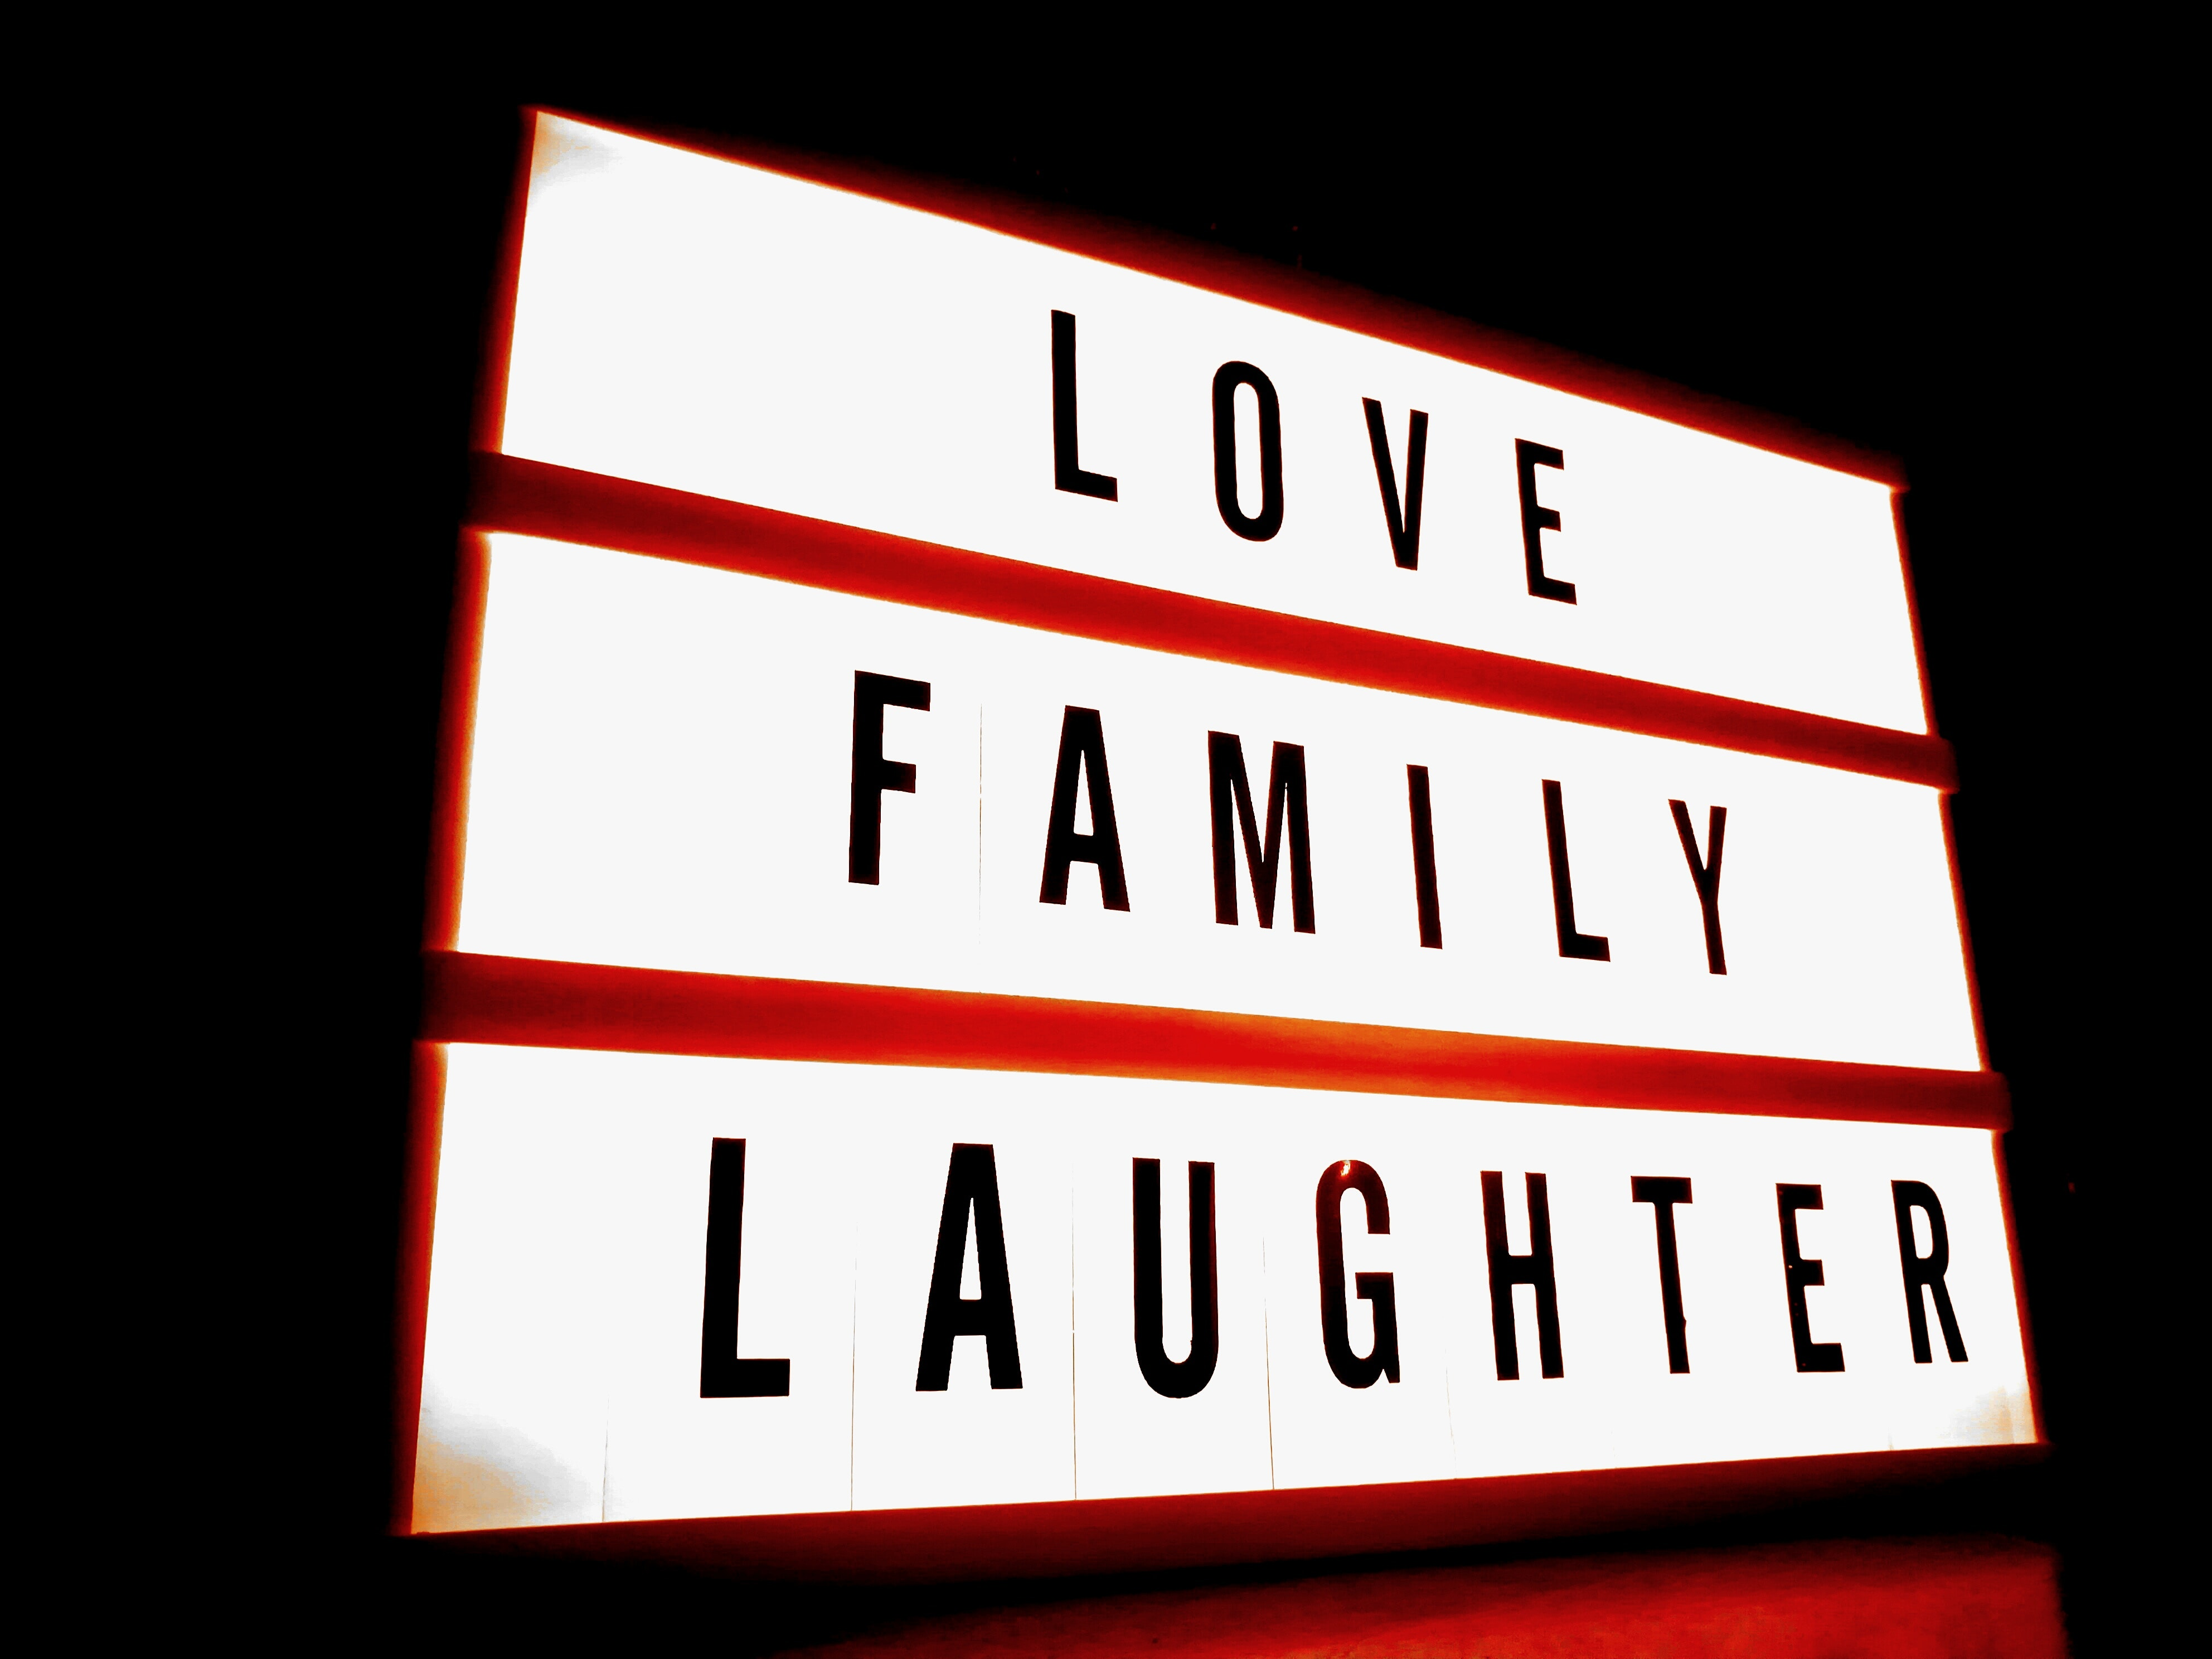 Love, family, laughter sign board